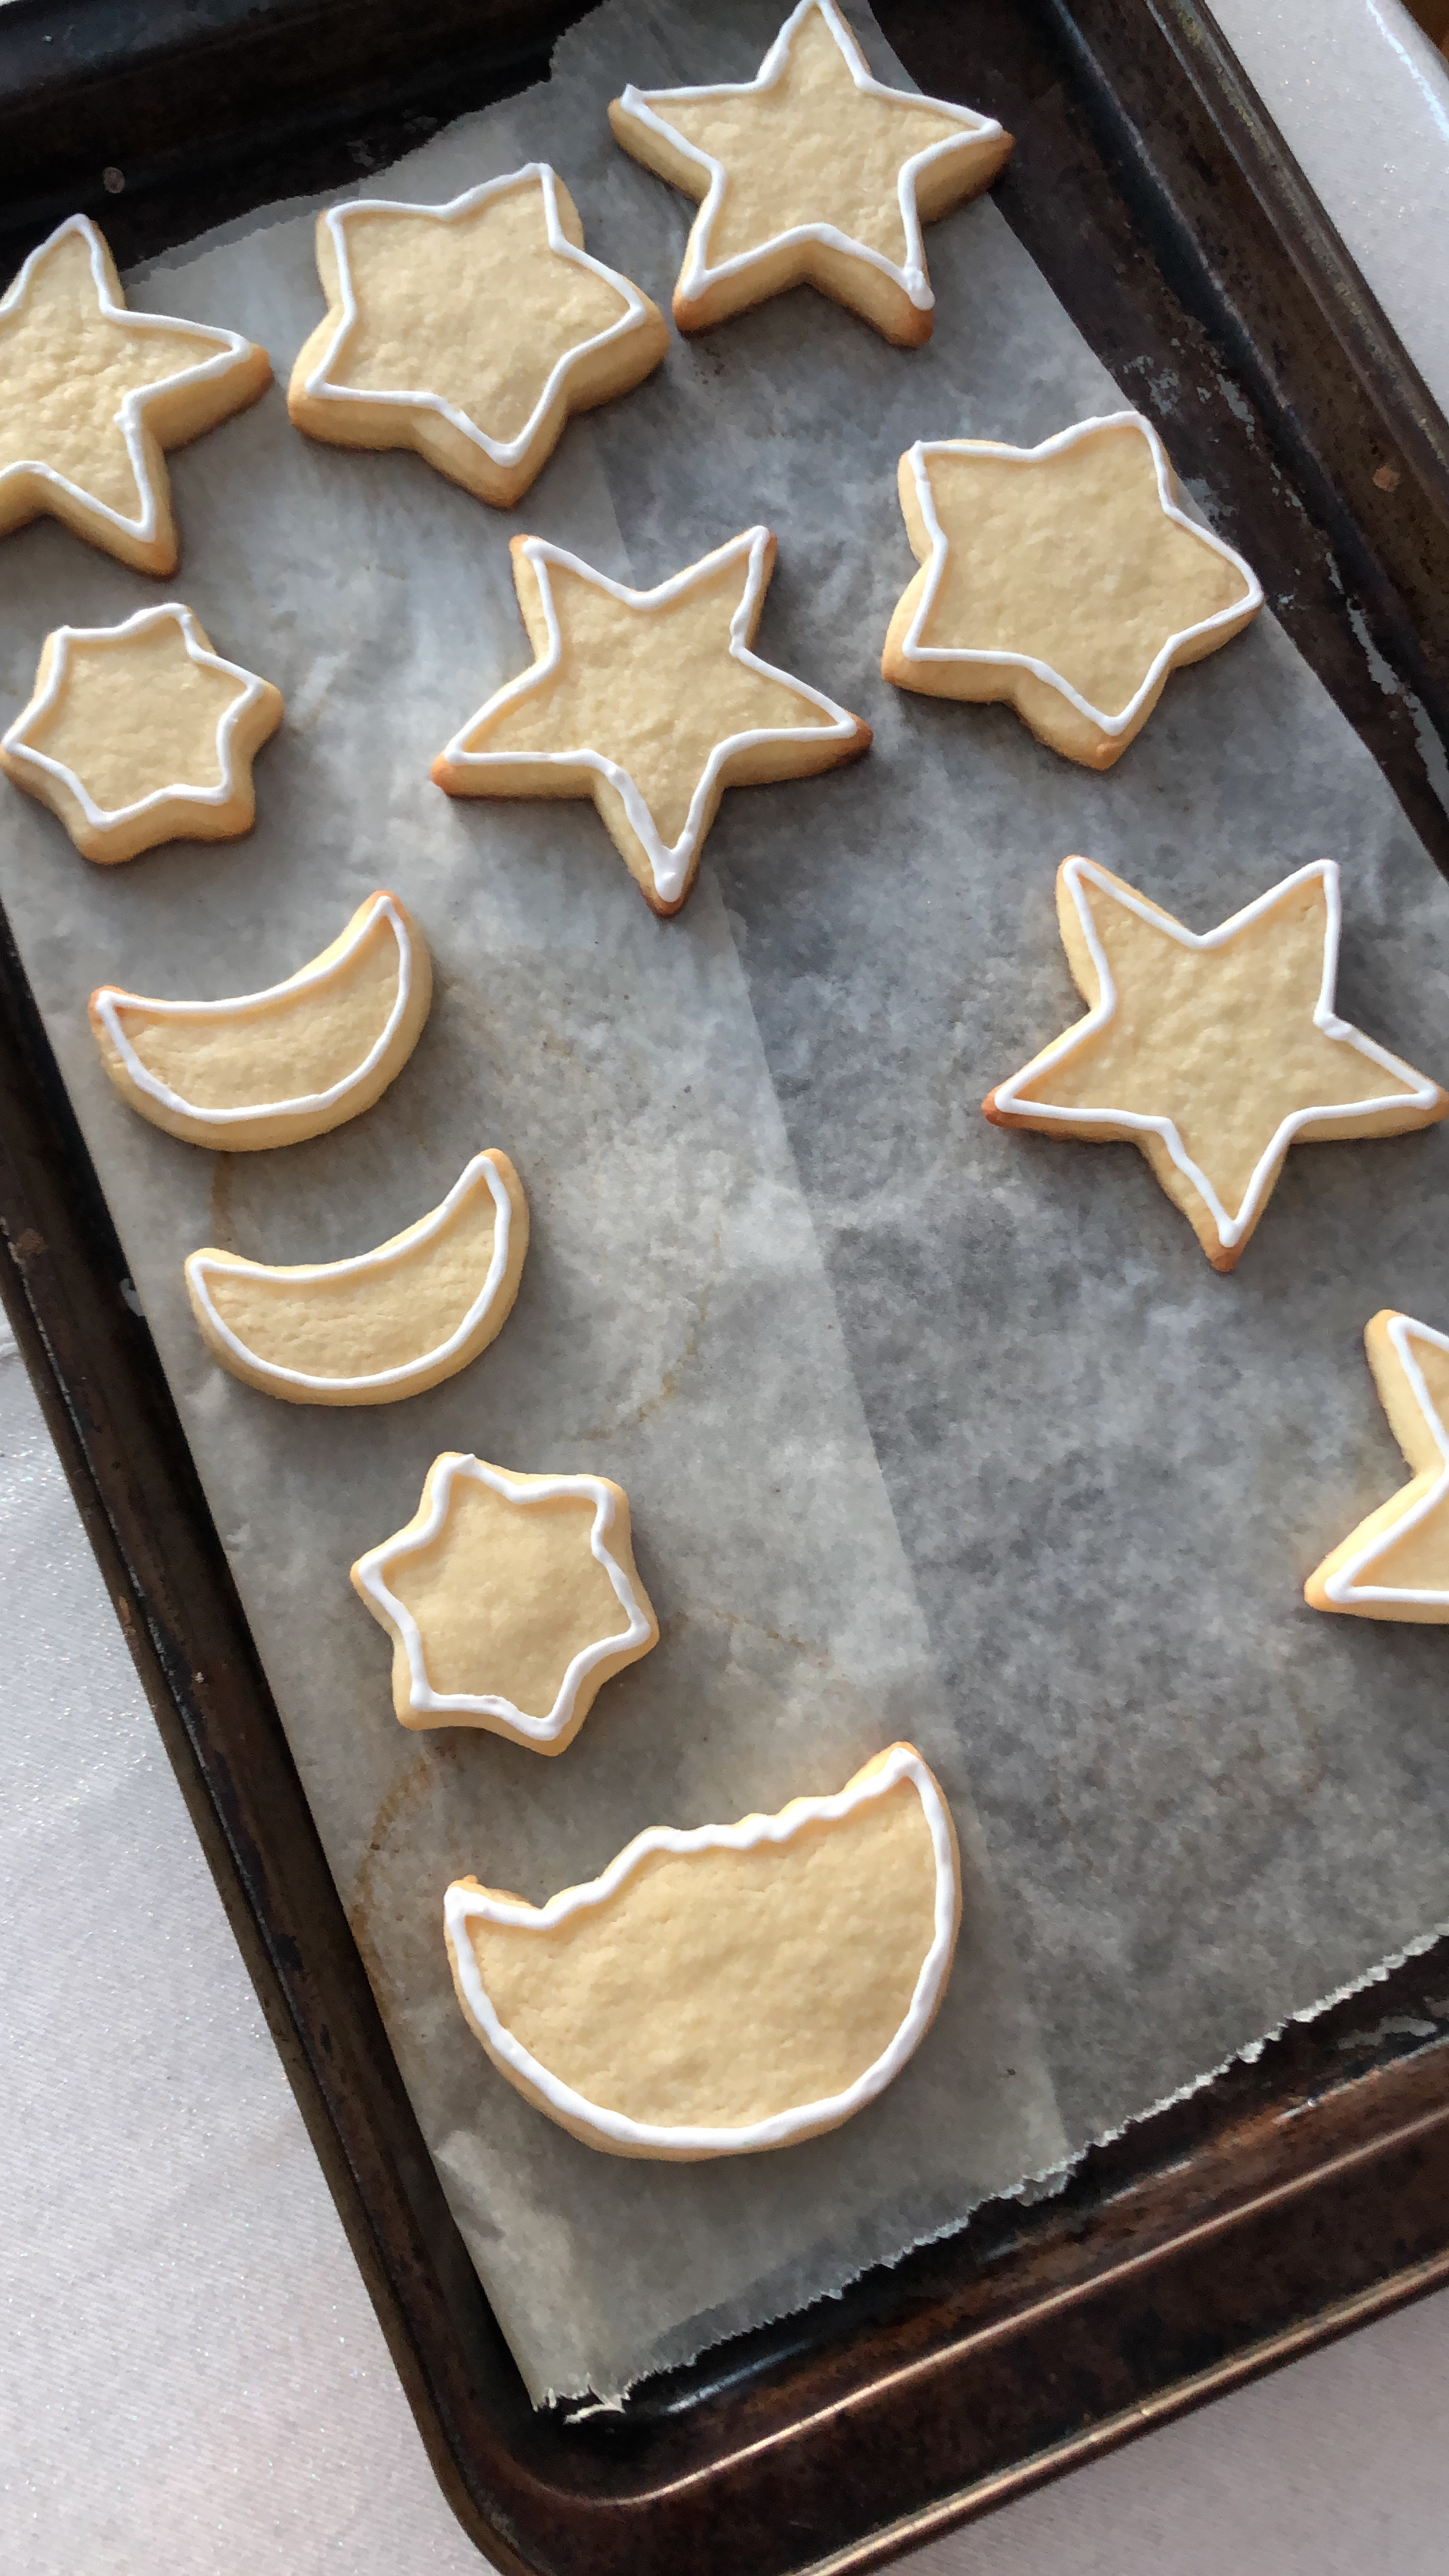 Outlining each and every cookie before flooding them